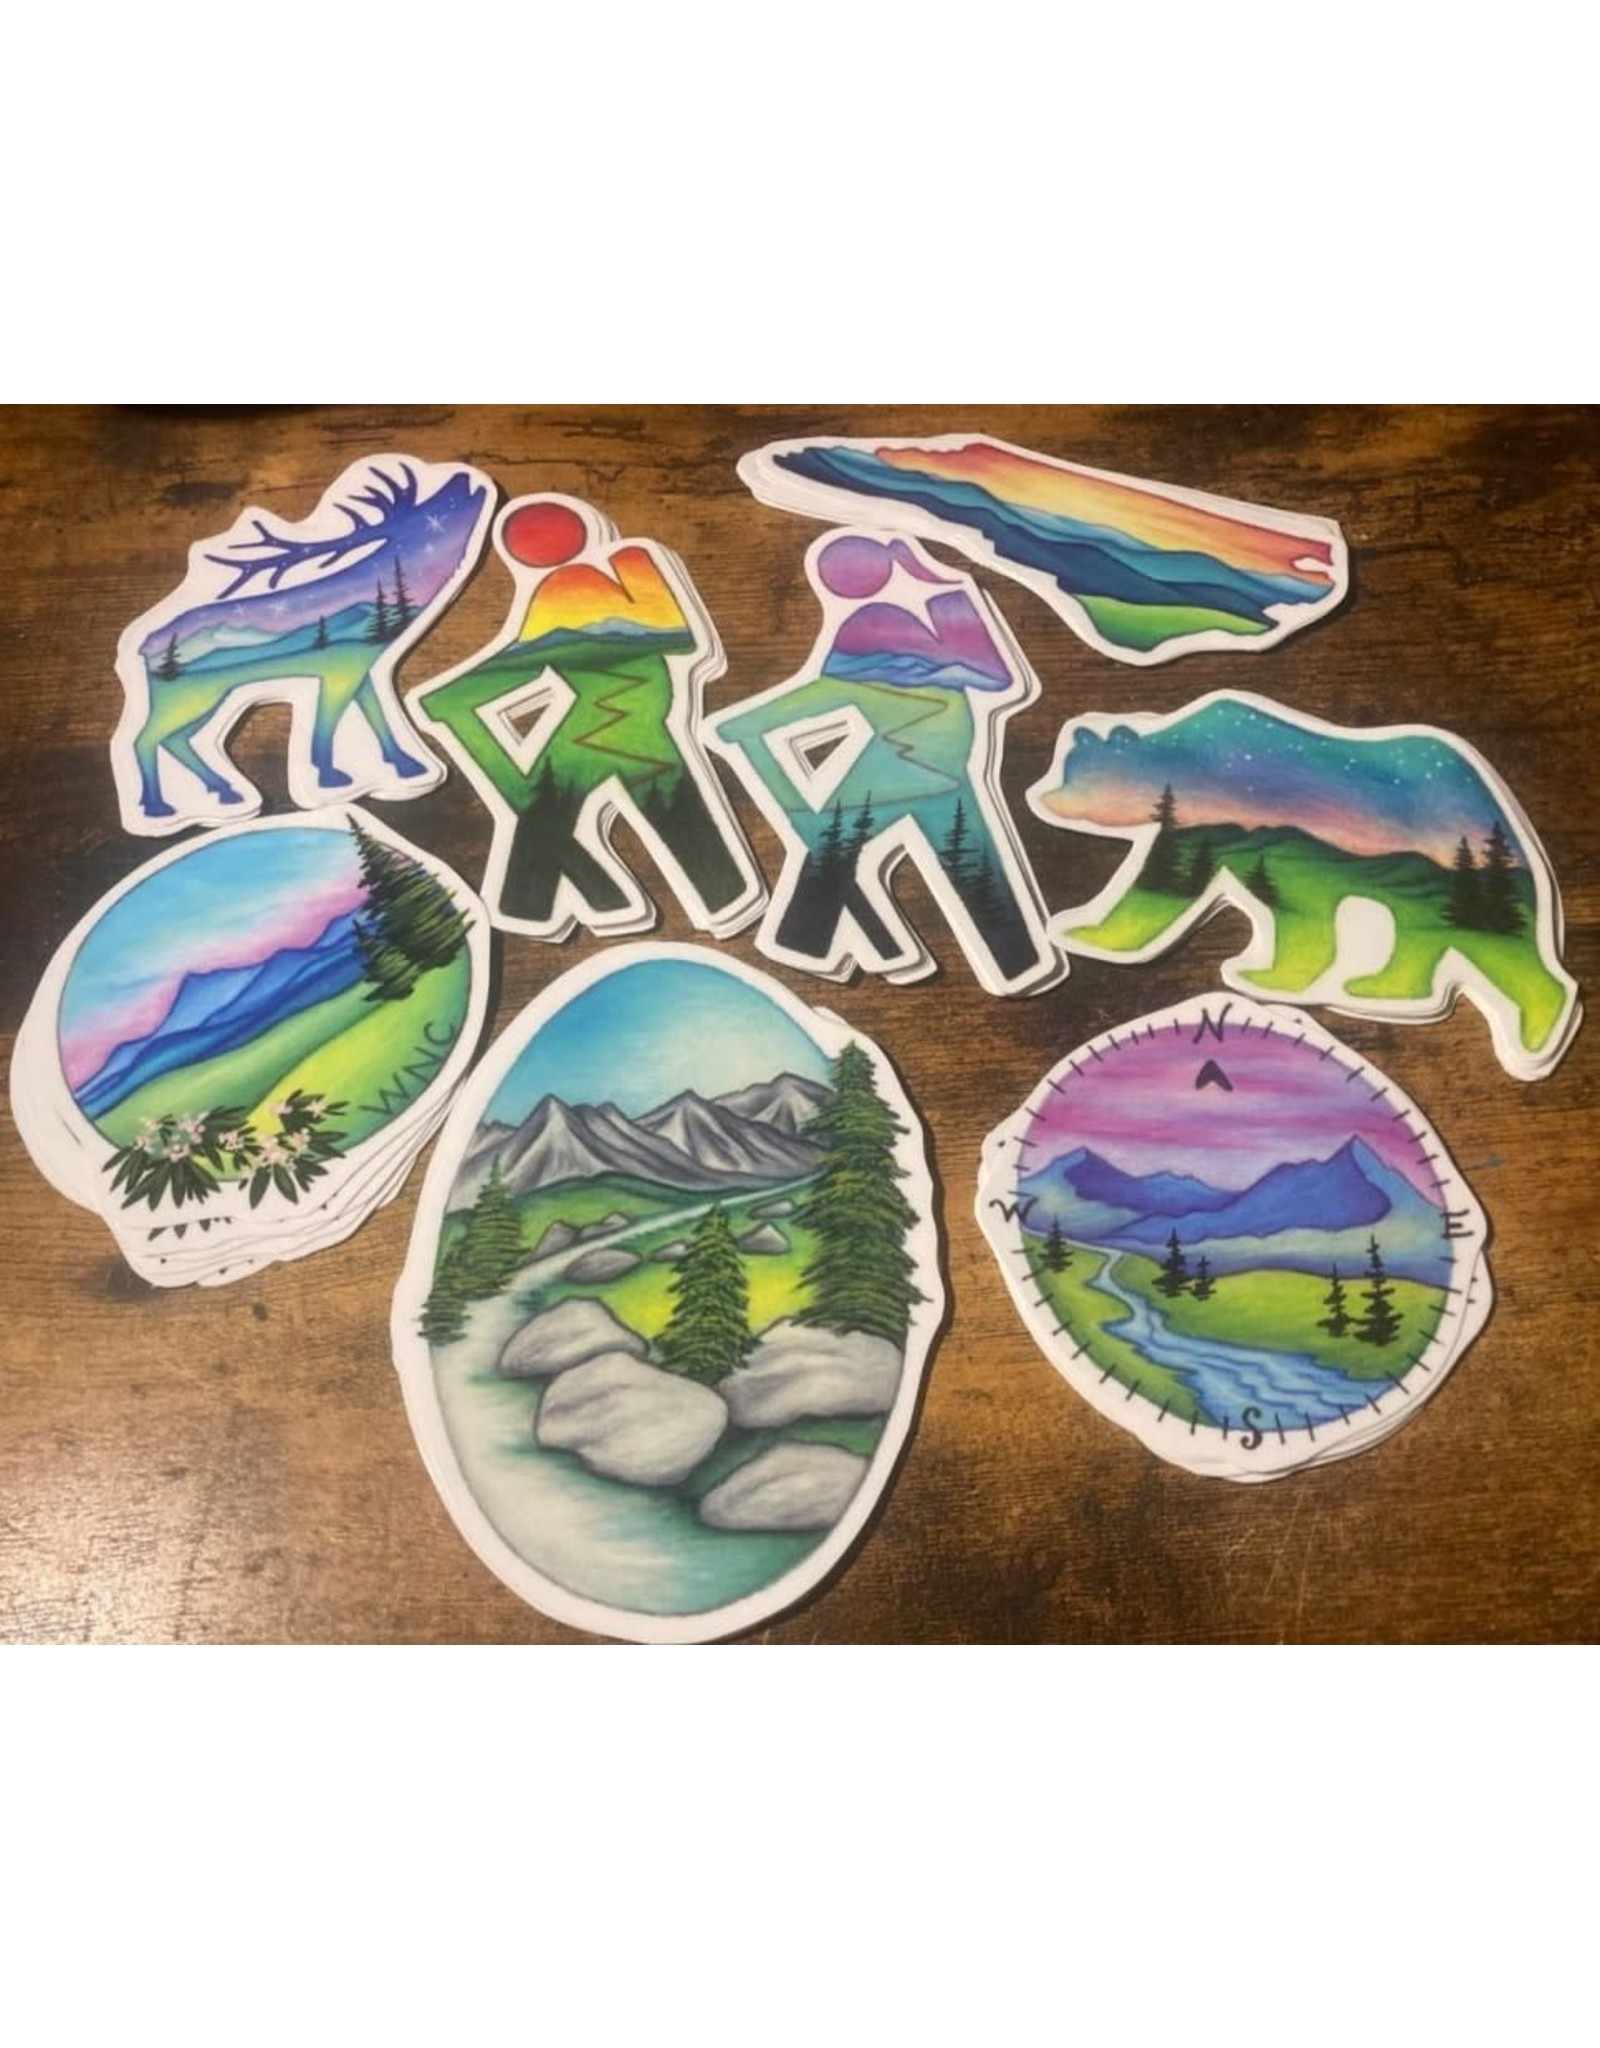 Wandering Arts and Crafts Variety Stickers